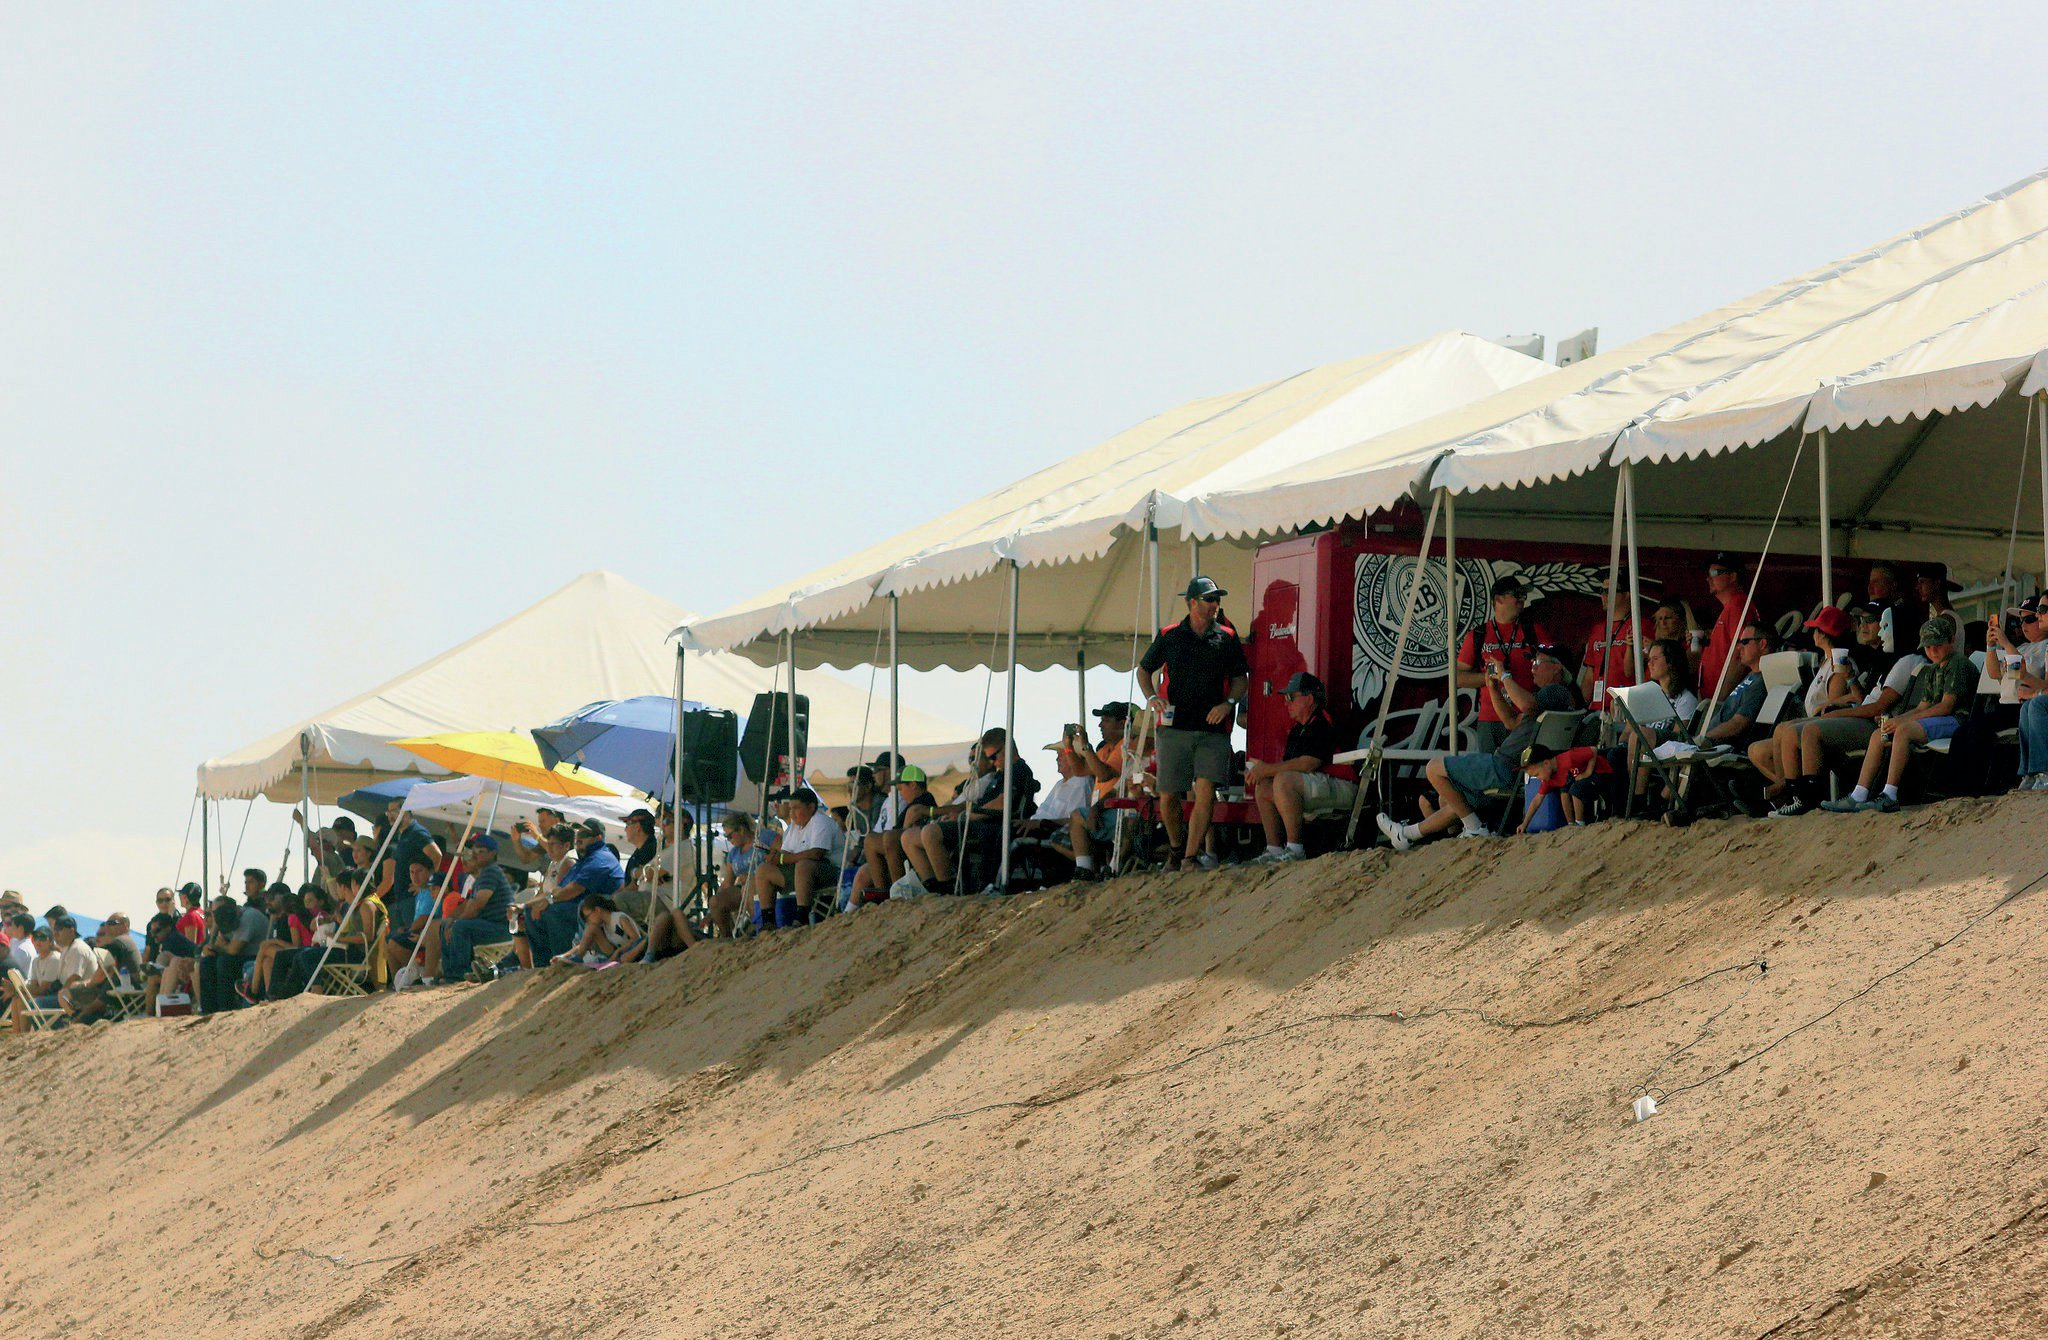 Fans get a front-row seat to watch racing action at the only paid spectator area.